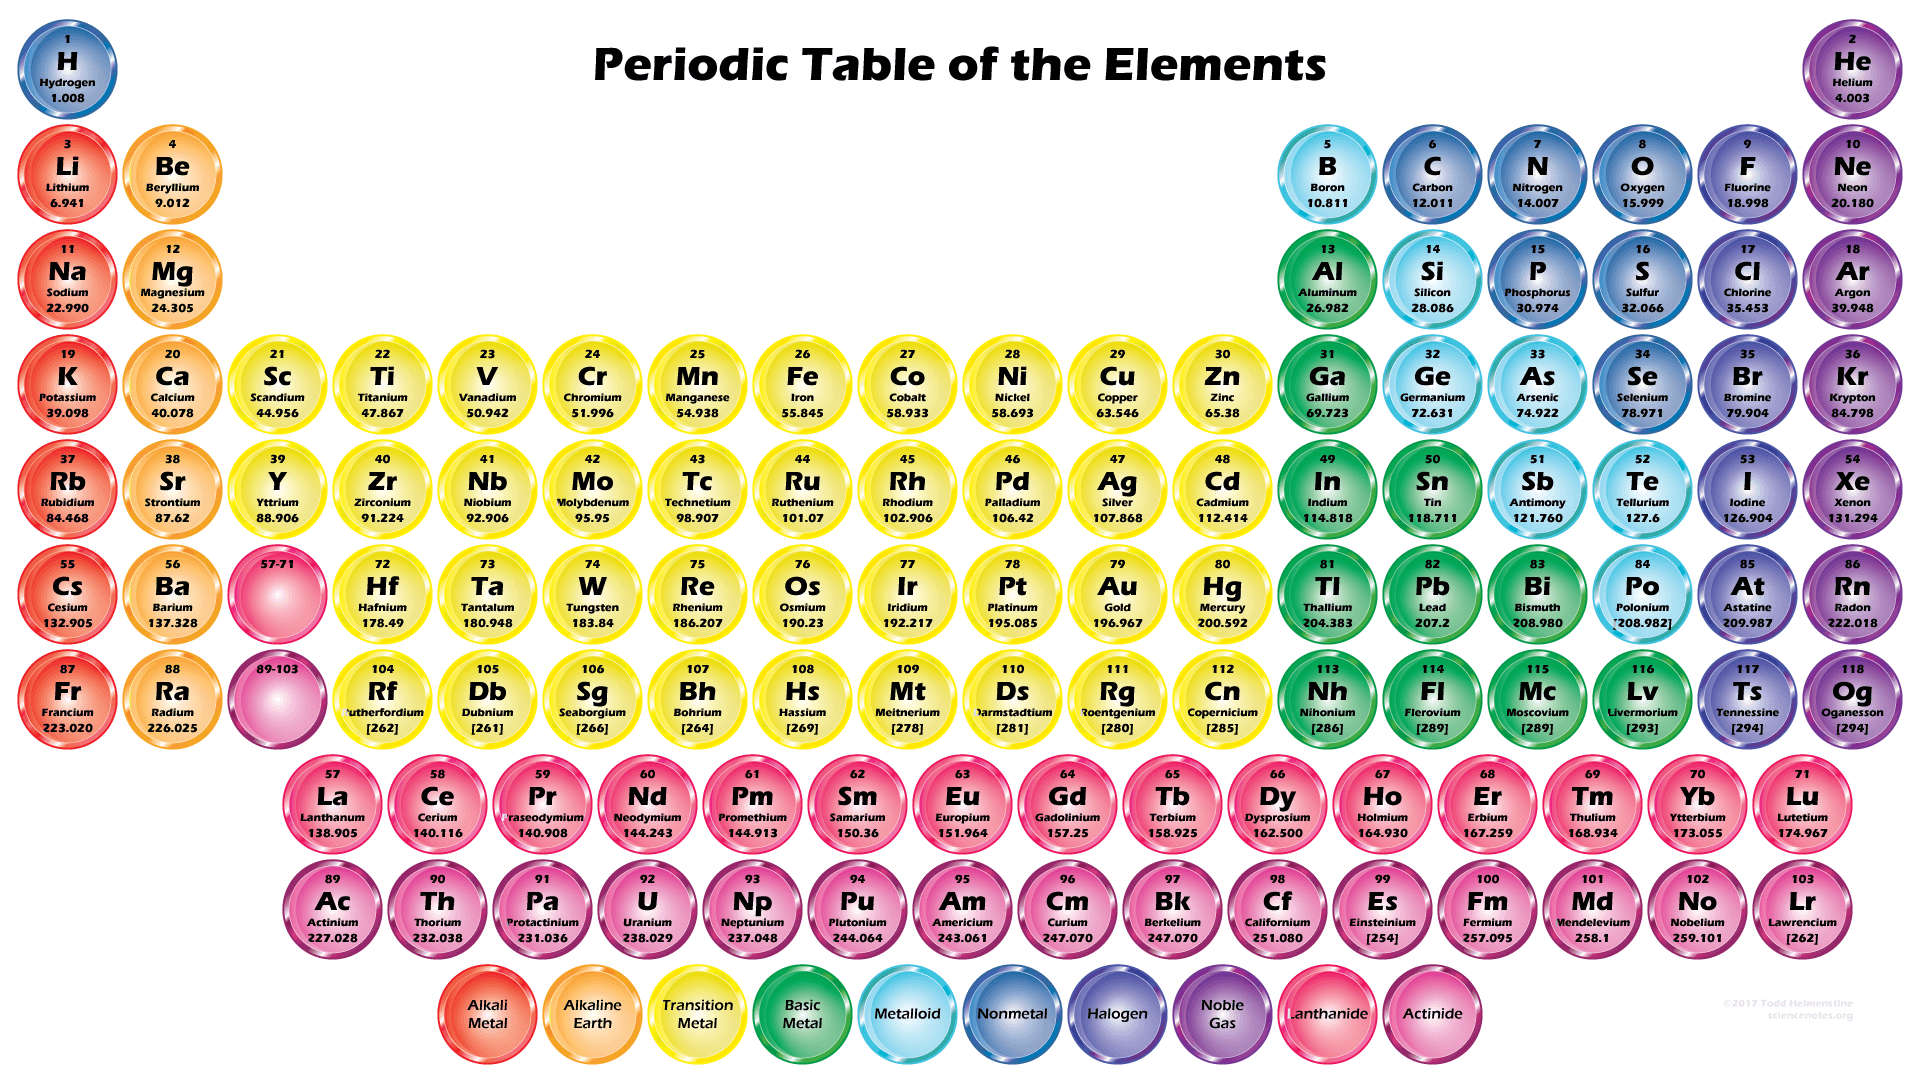 Chemical periodic table of elements with names pdf napma high quality periodic table wallpaper 118 on elements biocorpaavc Gallery